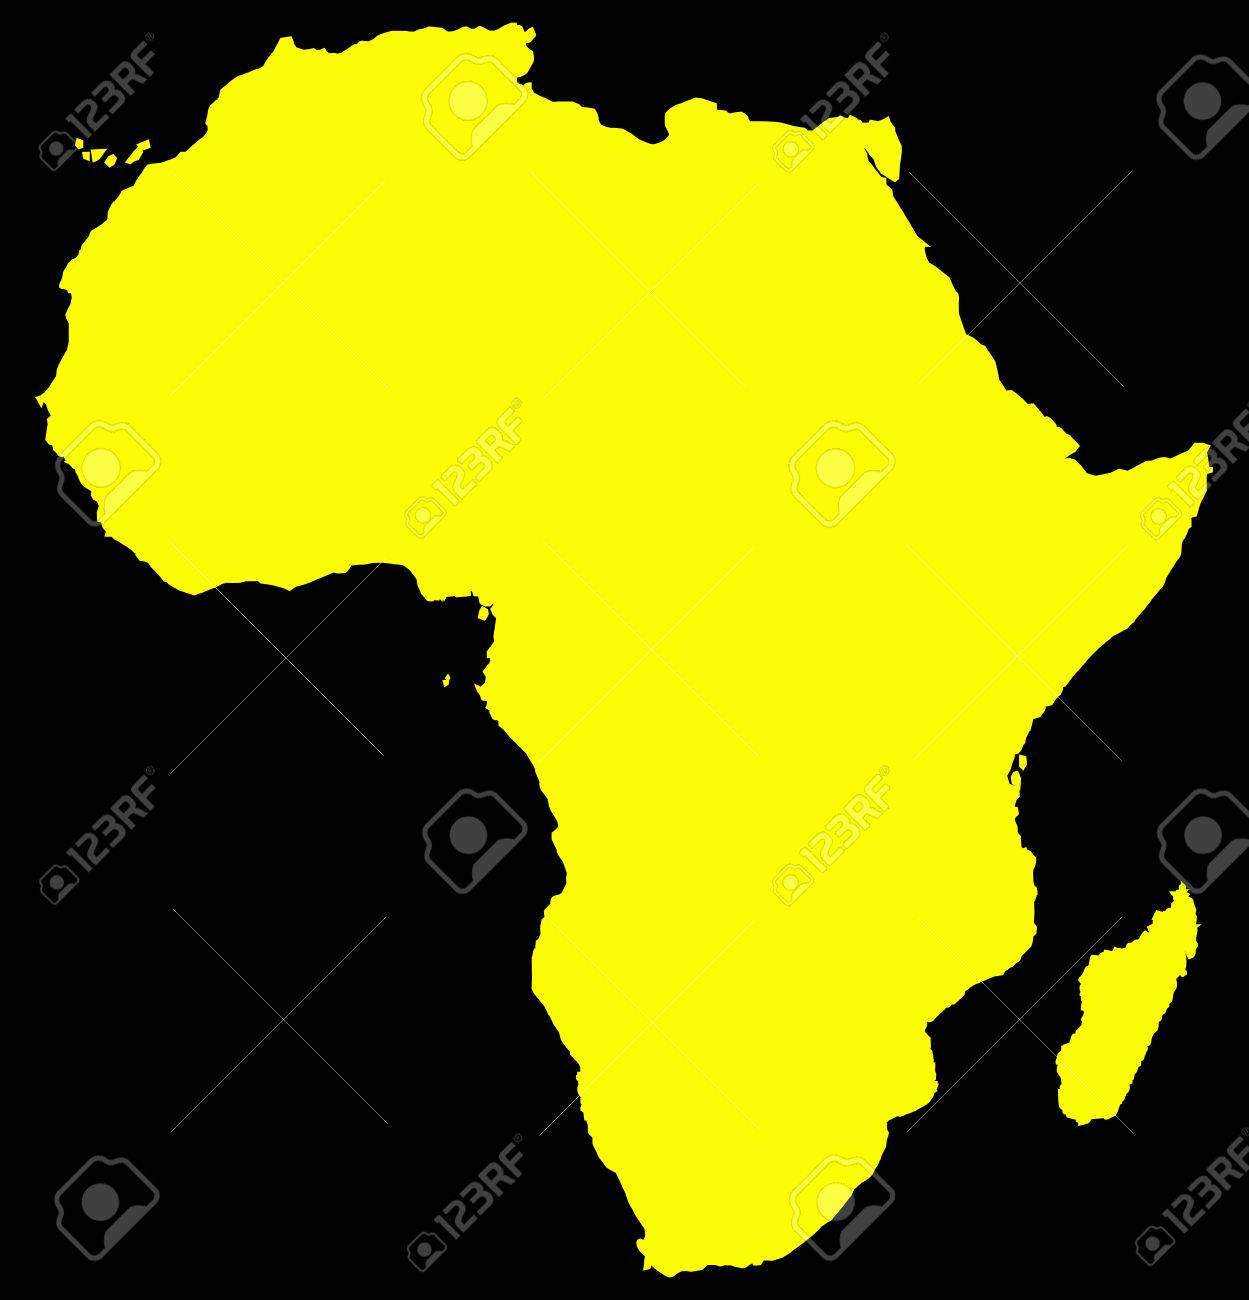 Africa Map Background.A Yellow Africa Map Isolated On A Black Background Royalty Free